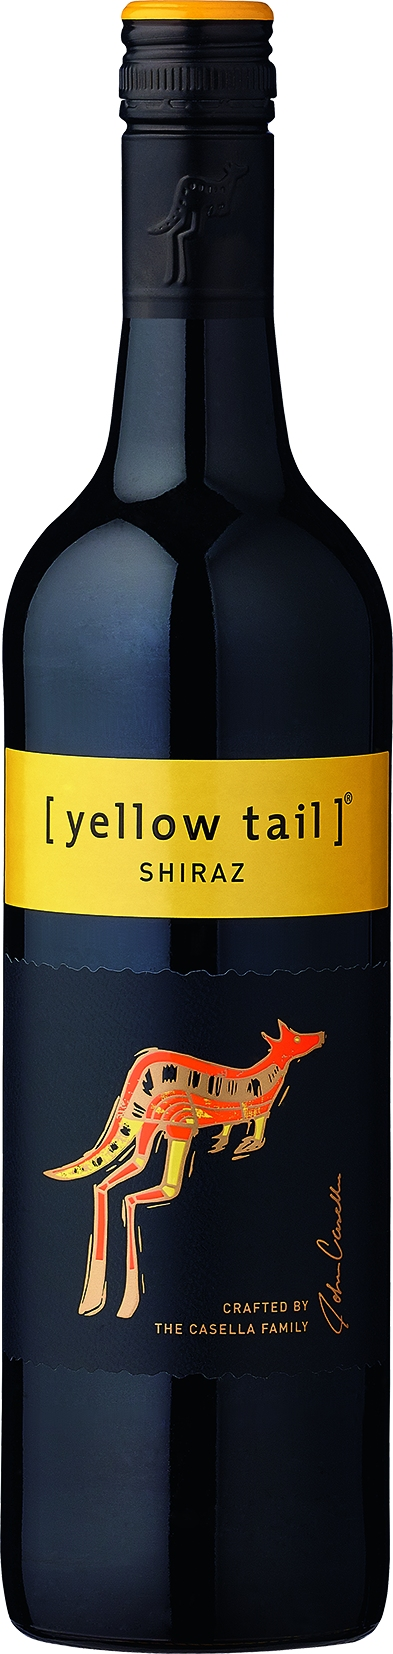 Yellow Tail, Shiraz, red